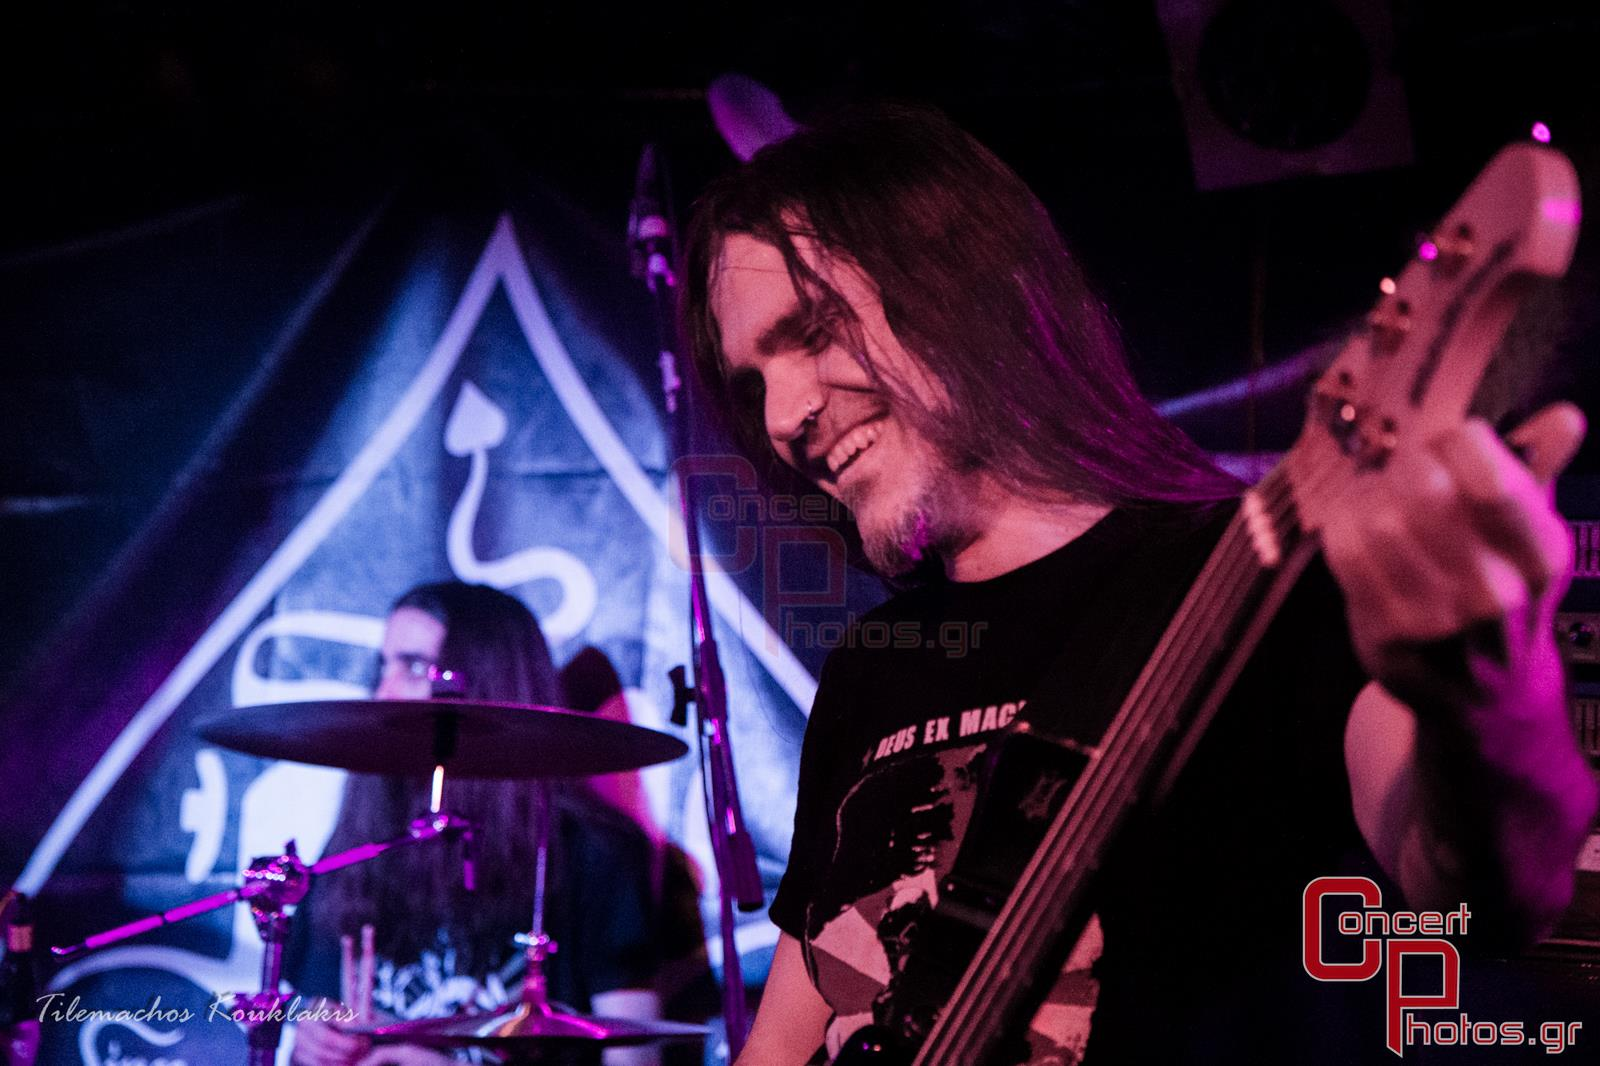 Nightstalker-Nightstalker AN Club photographer:  - concertphotos_-37